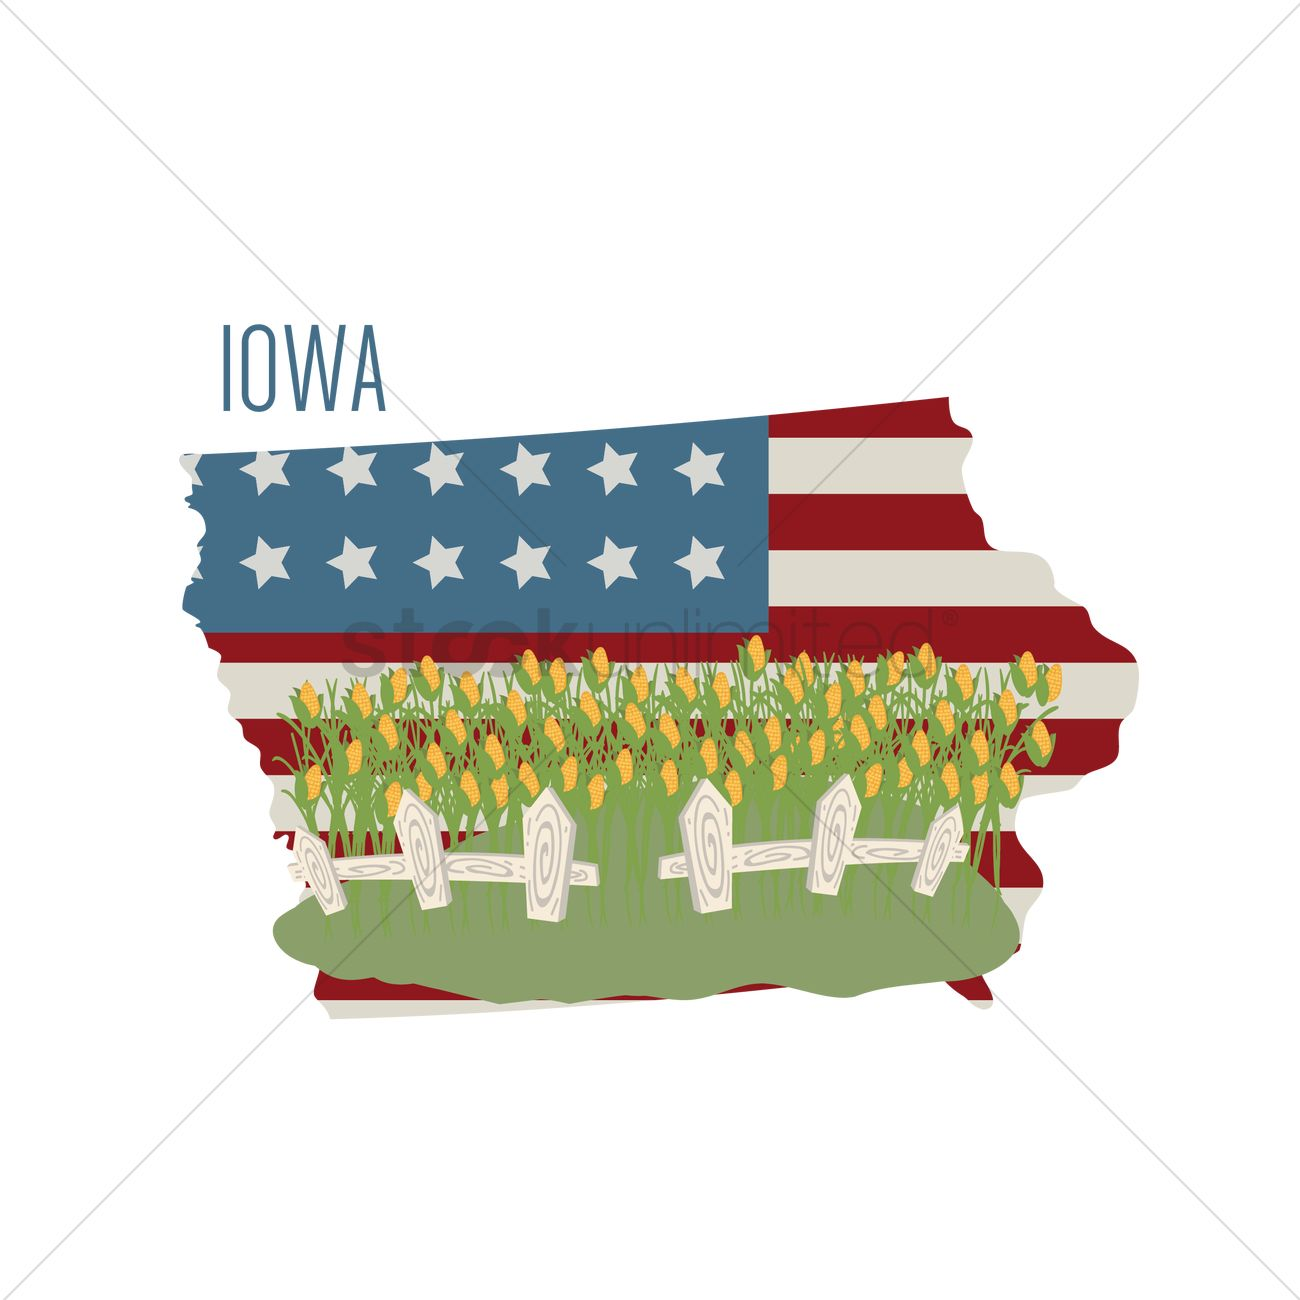 Usa America State States Map Maps Geography Cartography Topography Map Of Iowa Usa